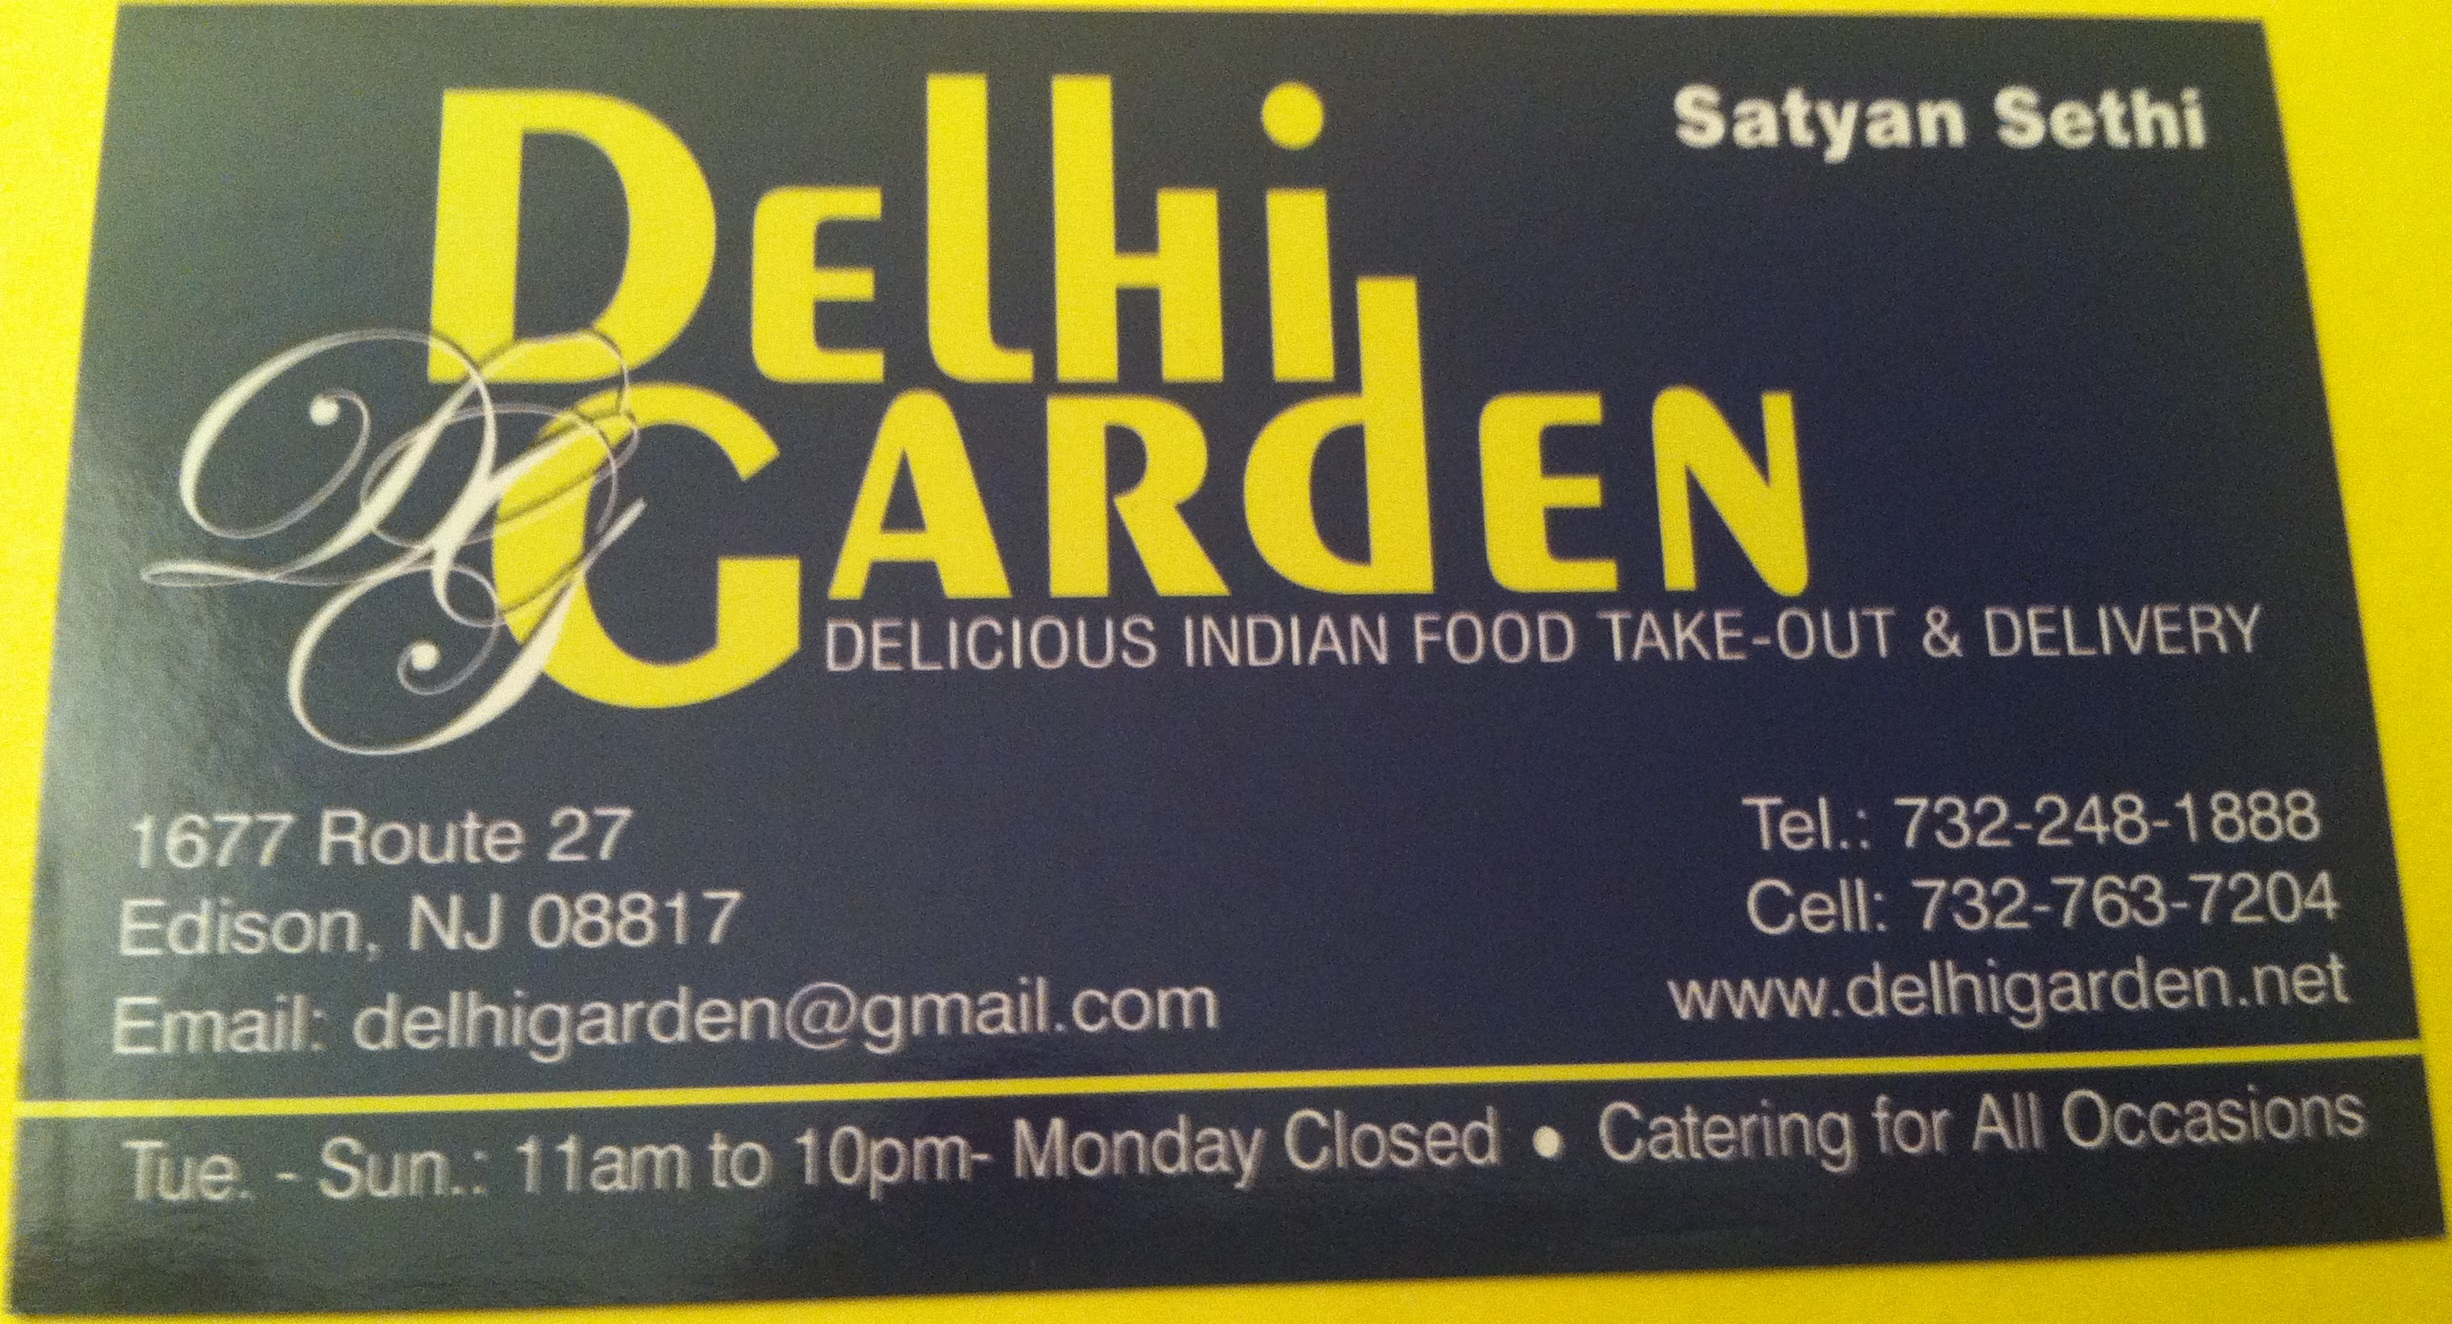 Business card redesign delhi garden for Cheapest place to get business cards